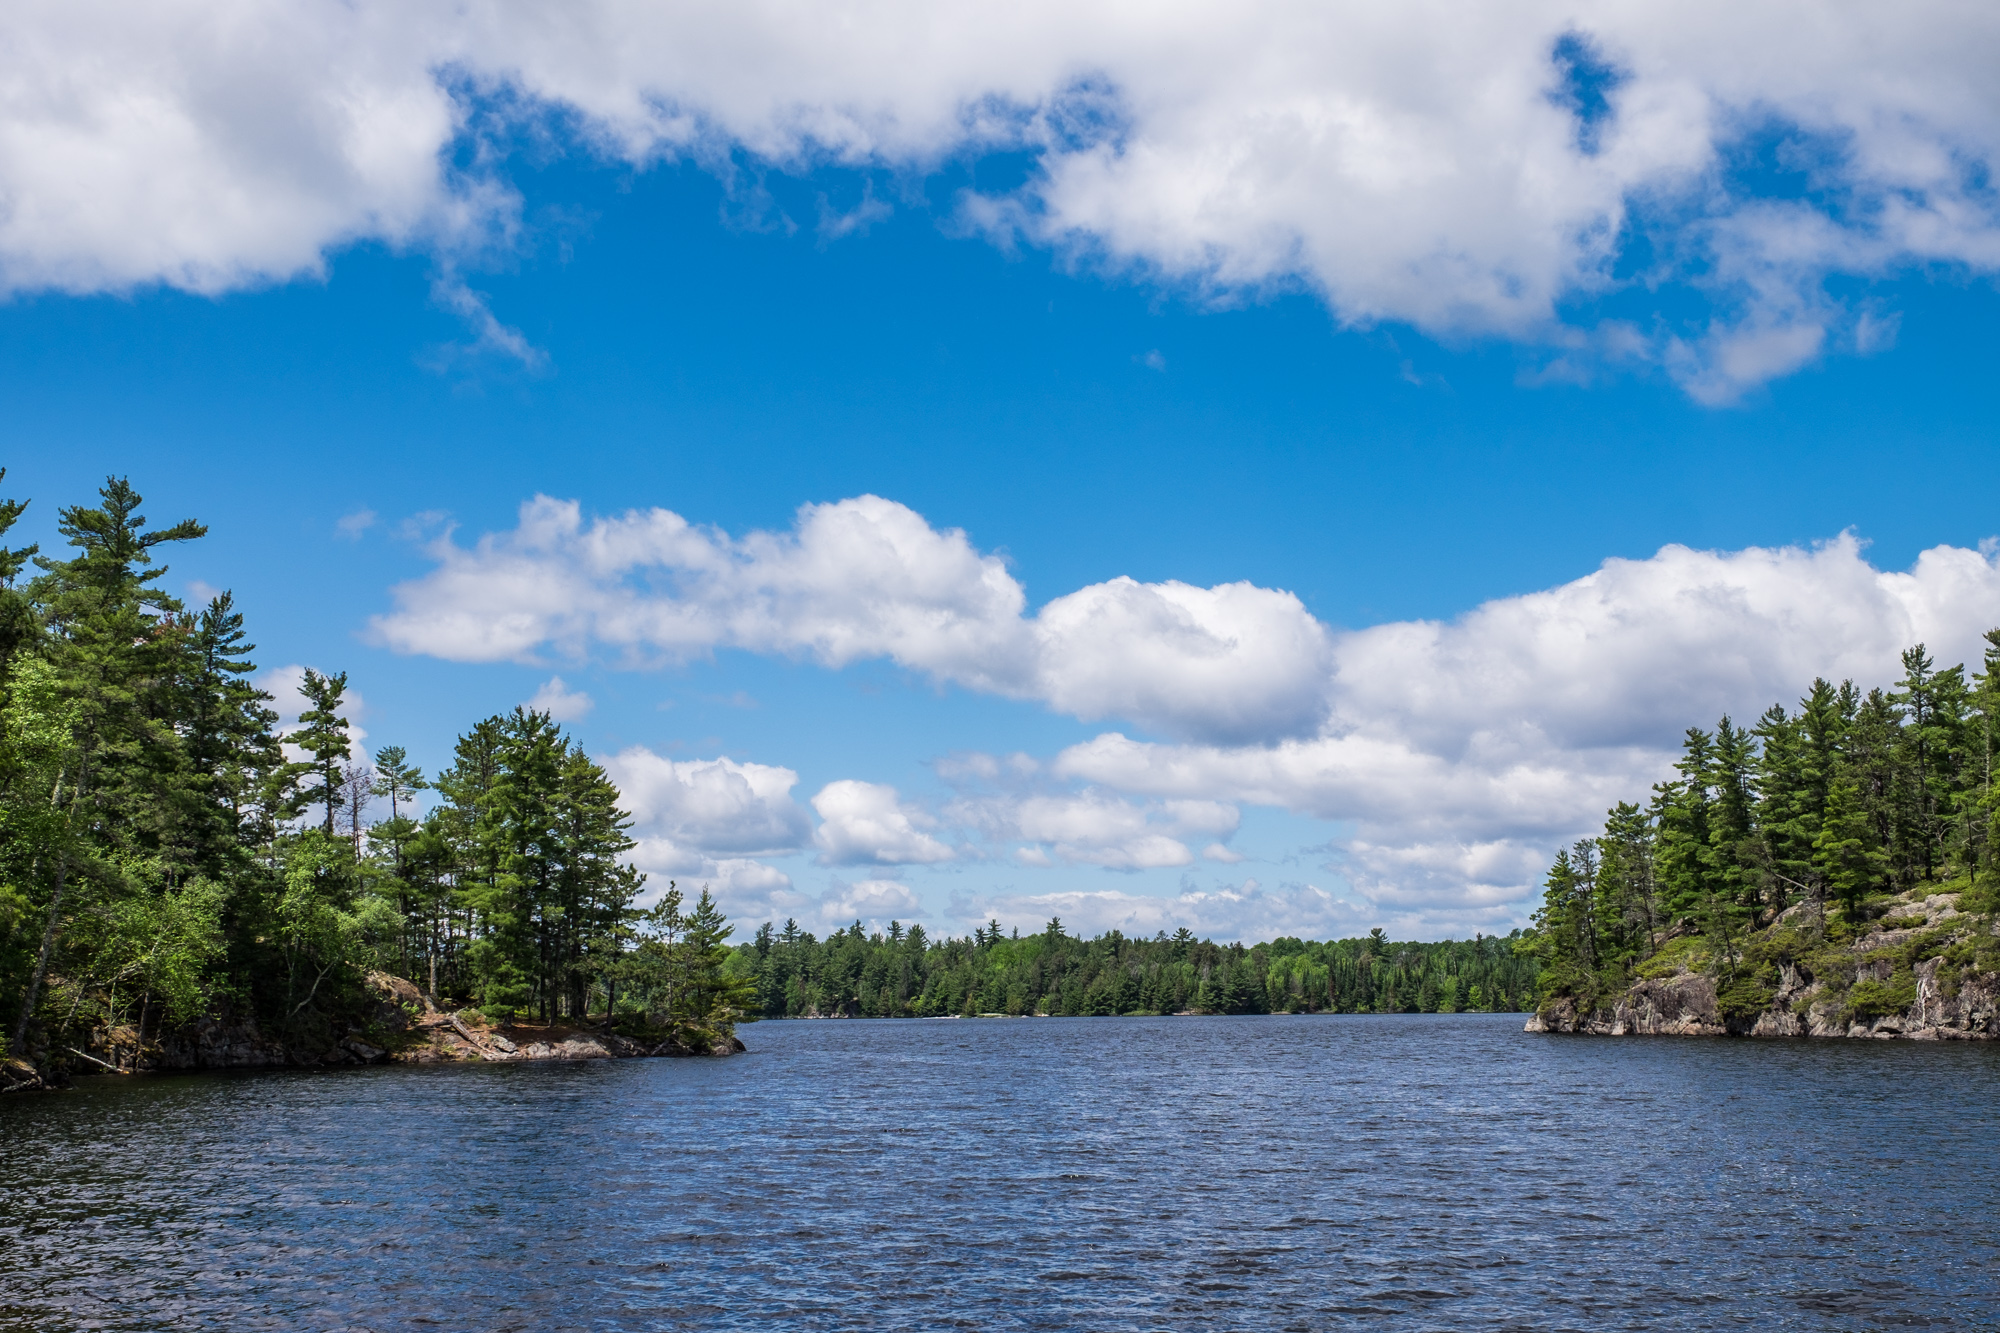 This is a pretty typical view of Voyageurs National Park.